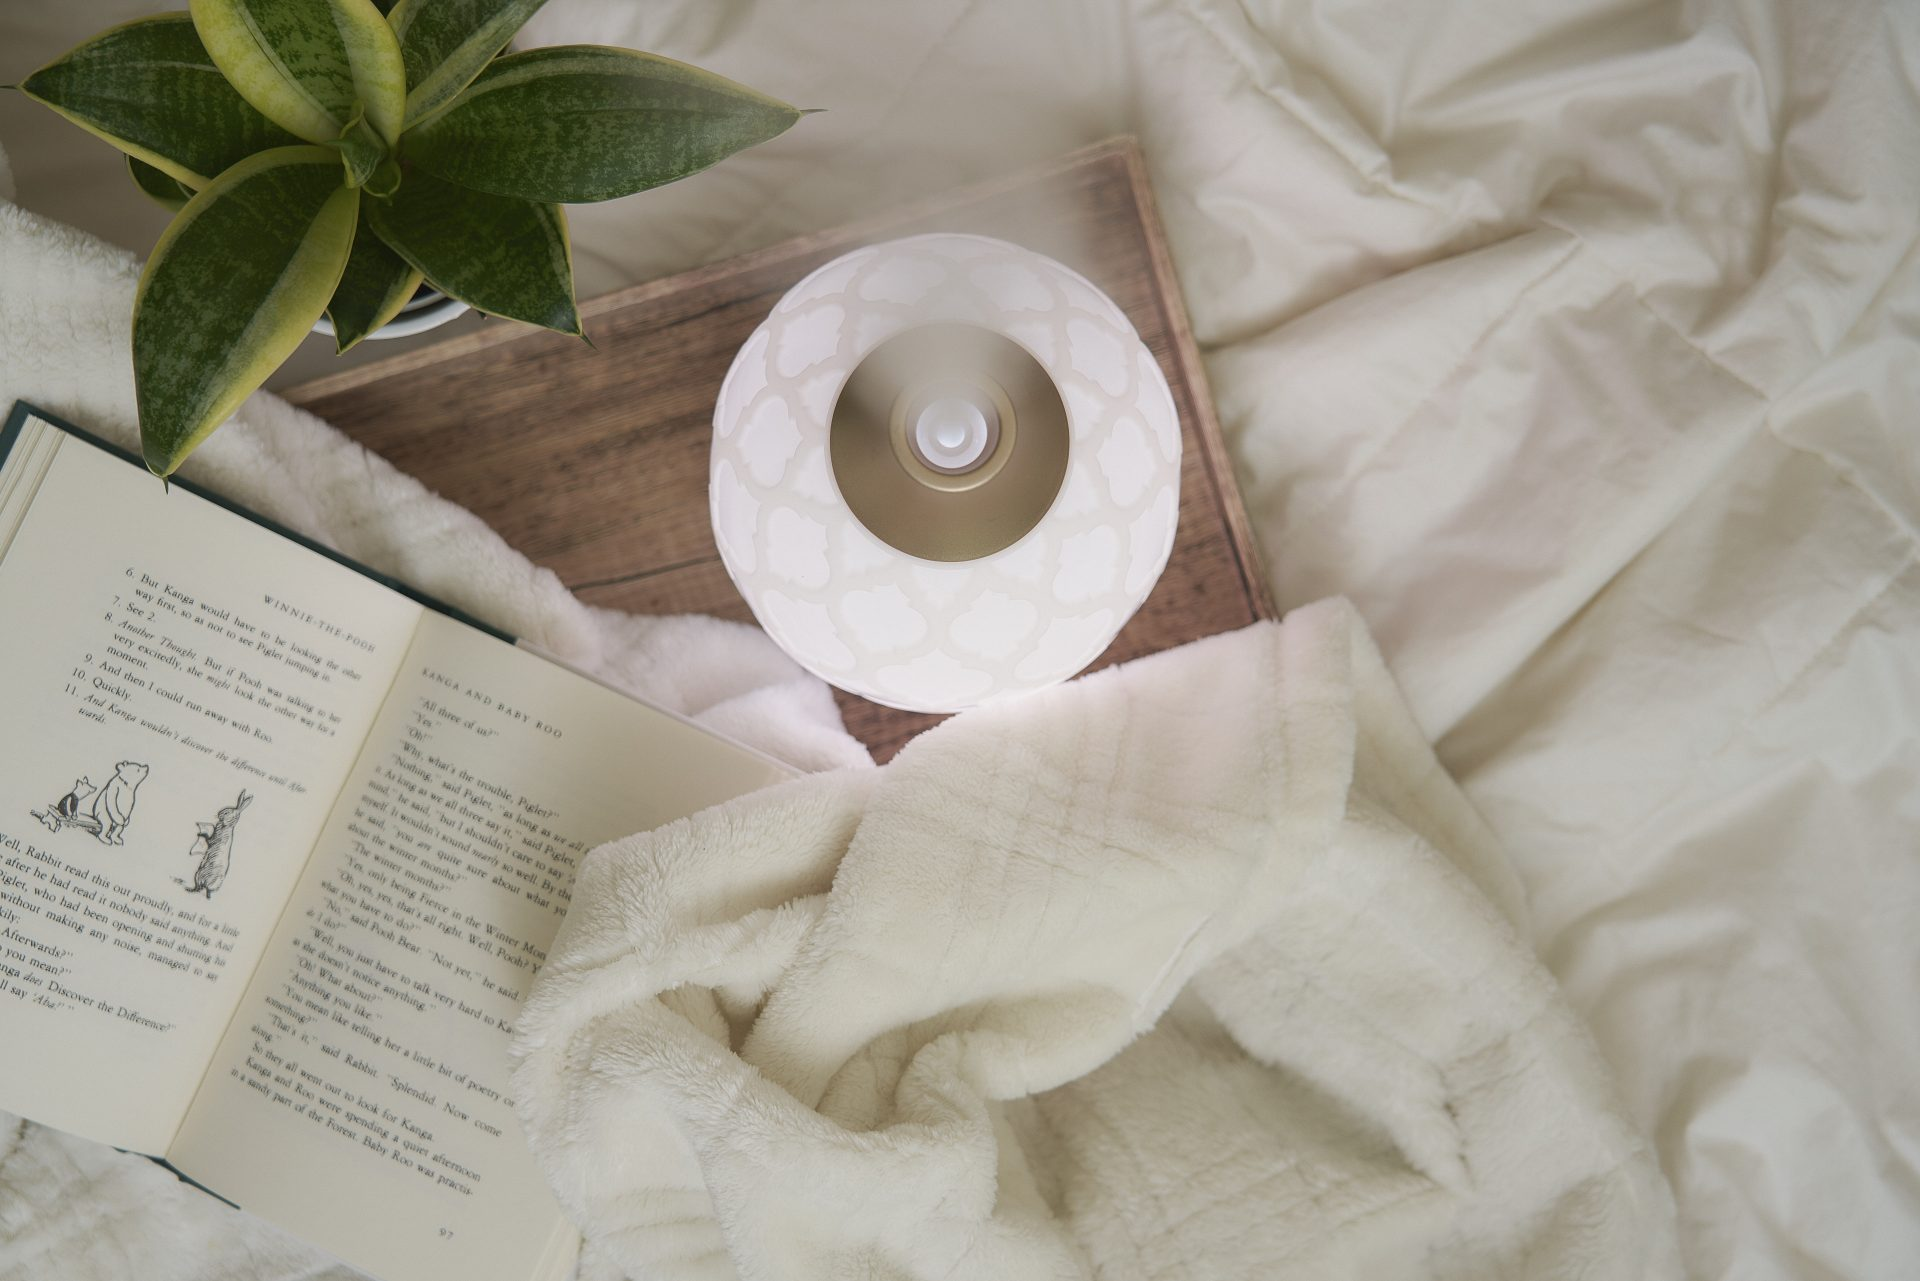 Young Living essential oil diffuser in a bedroom with a plant and book nearby